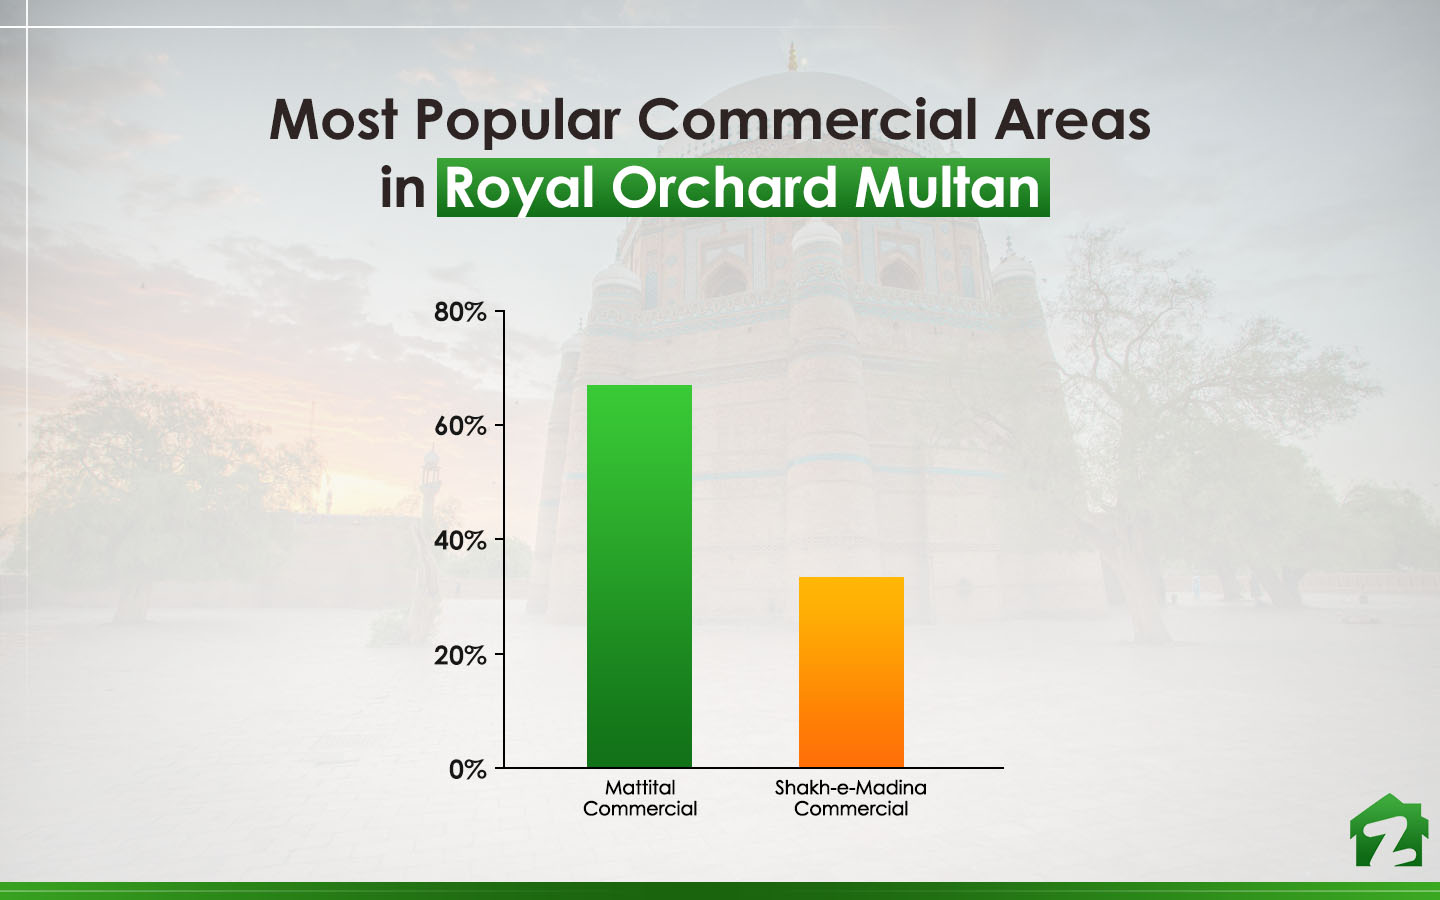 Mattital commercial area is the most preferred choice in Royal Orchard Multan